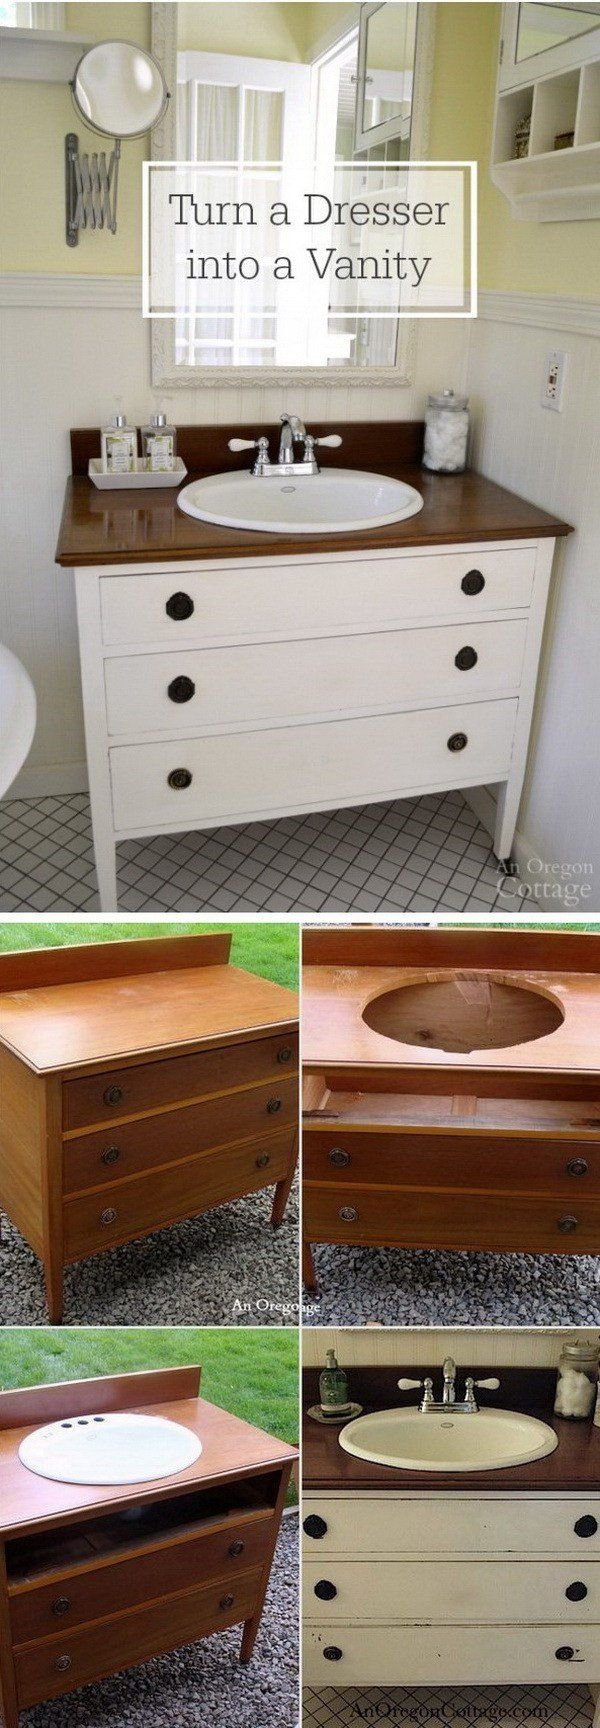 Diy bathroom vanity - 40 High Style Low Budget Furniture Makeovers You Could Definitely Do Diy Bathroom Vanitybathroom